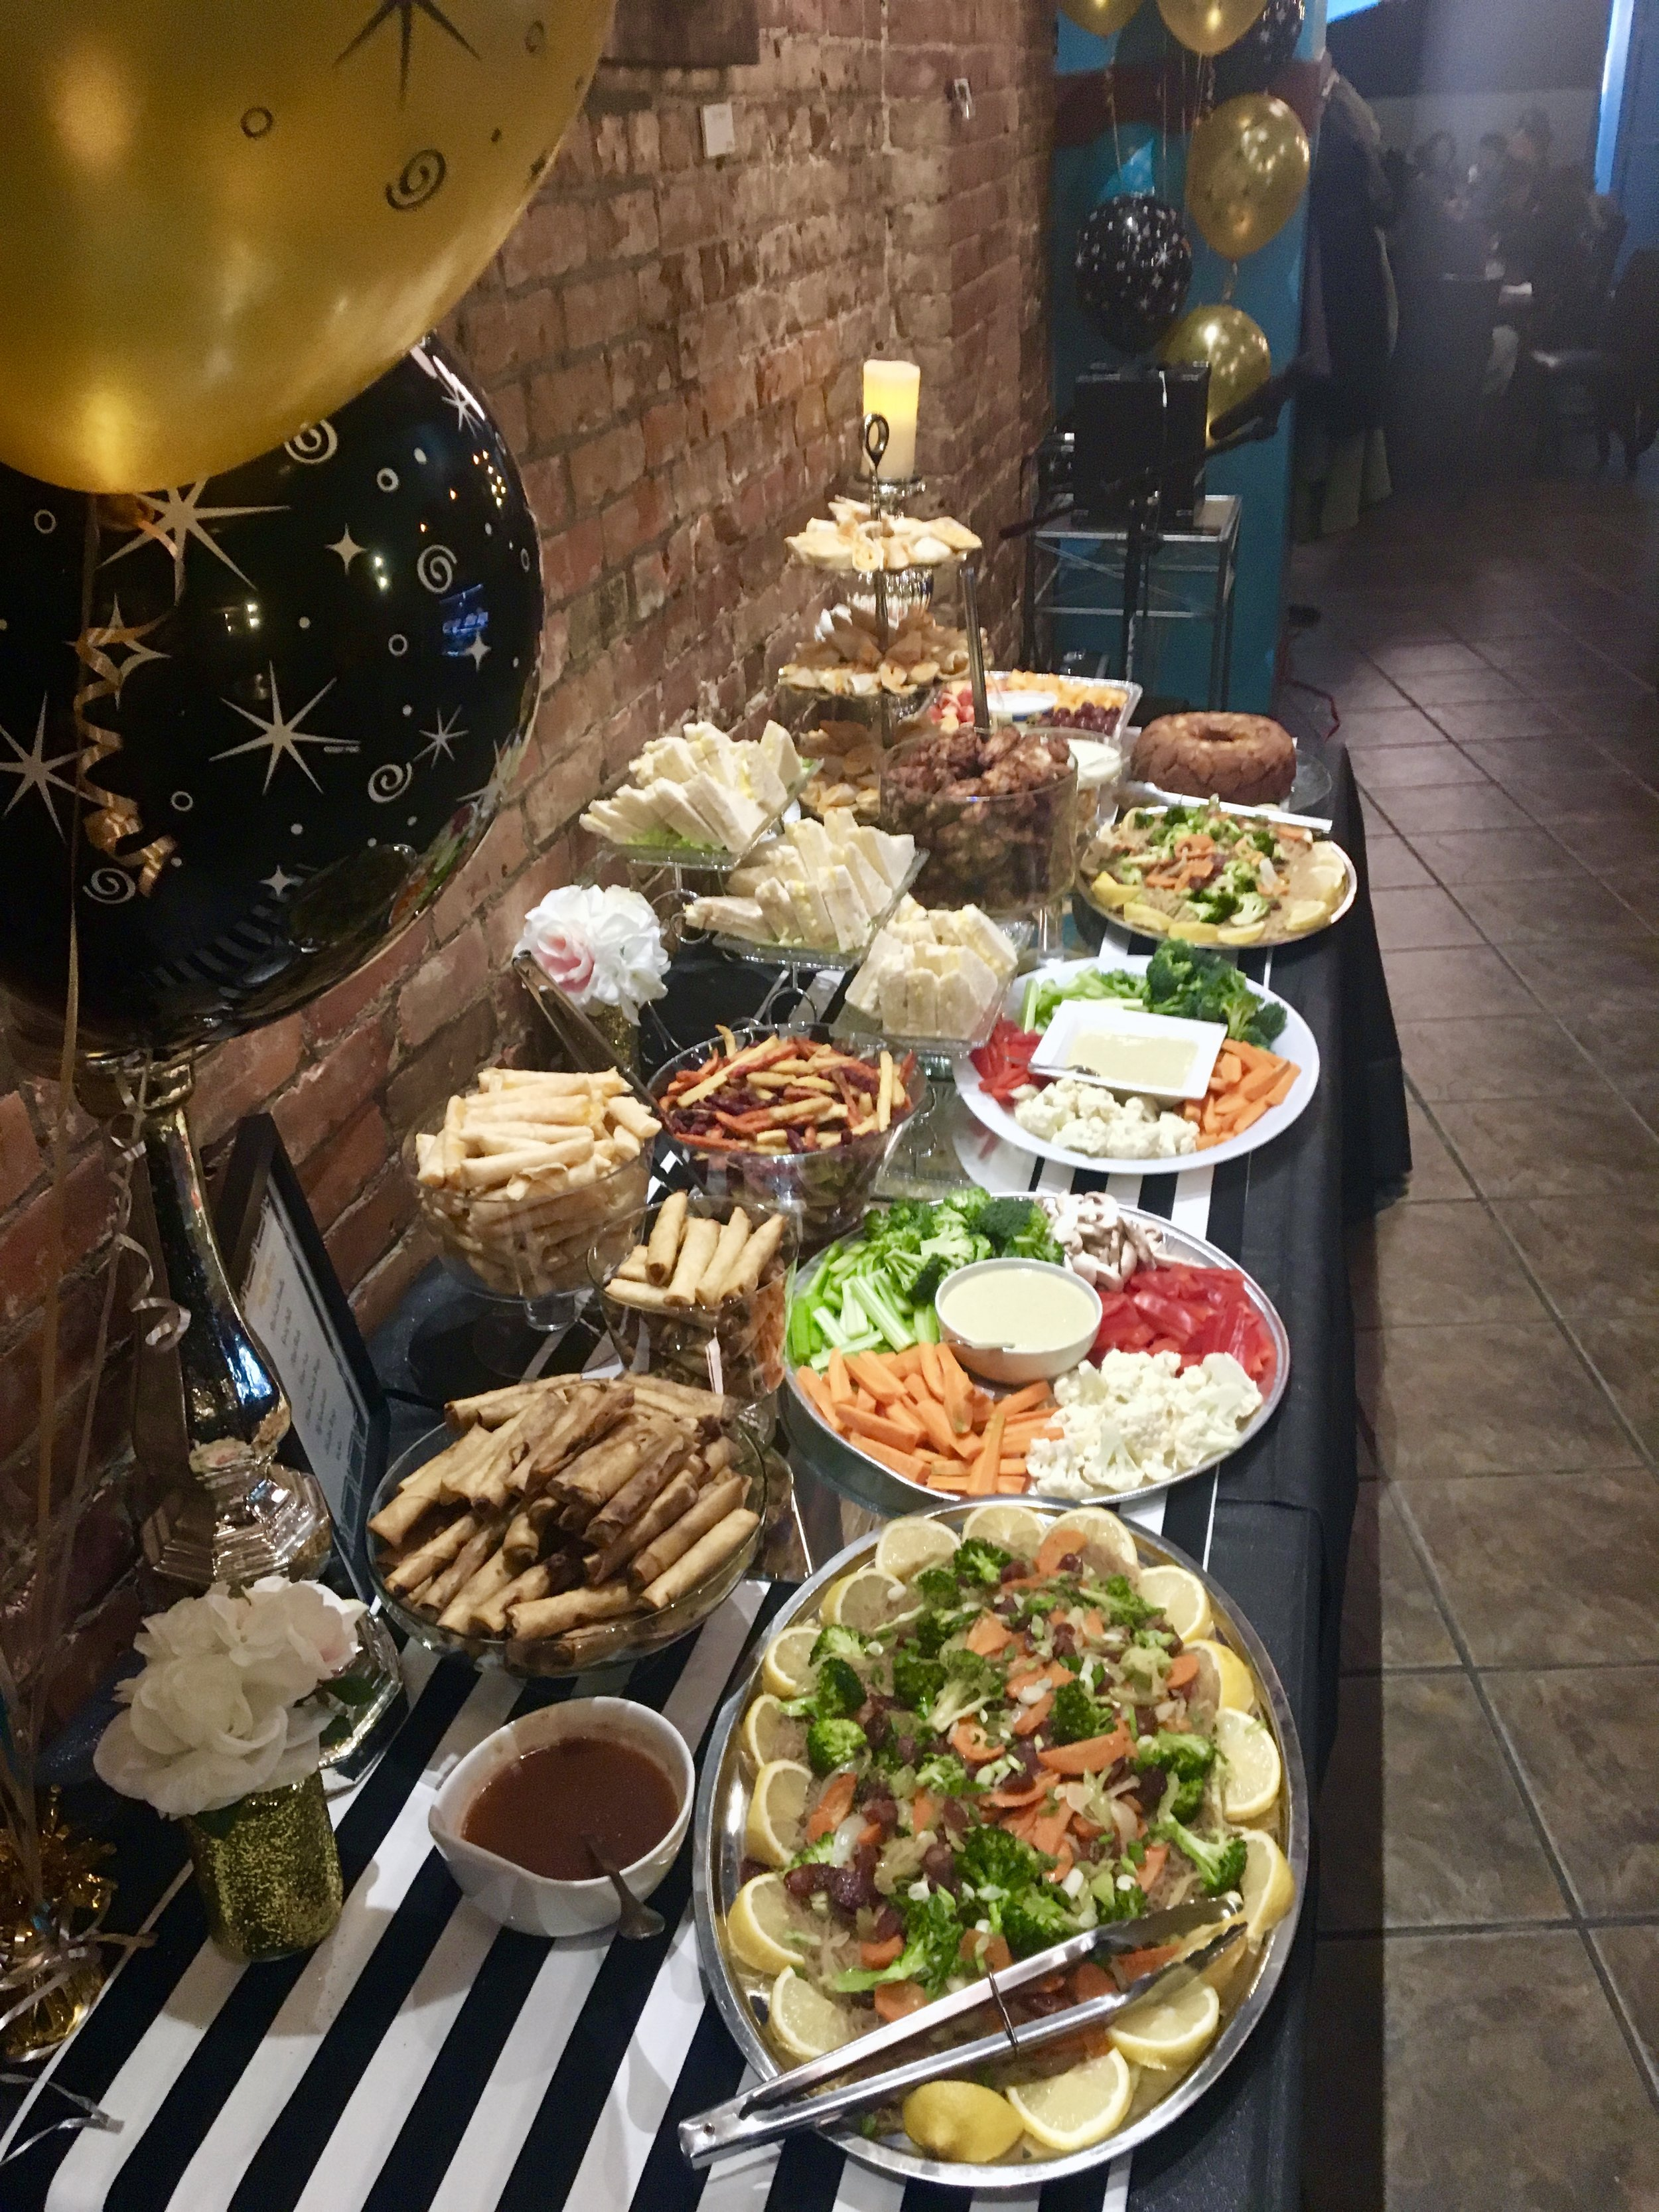 Want us to host or cater for your event? - We can host your event at our 374 Bank St location or cater for your special event with our wide variety of Filipino foods. For more information or quotes send us an email down below!